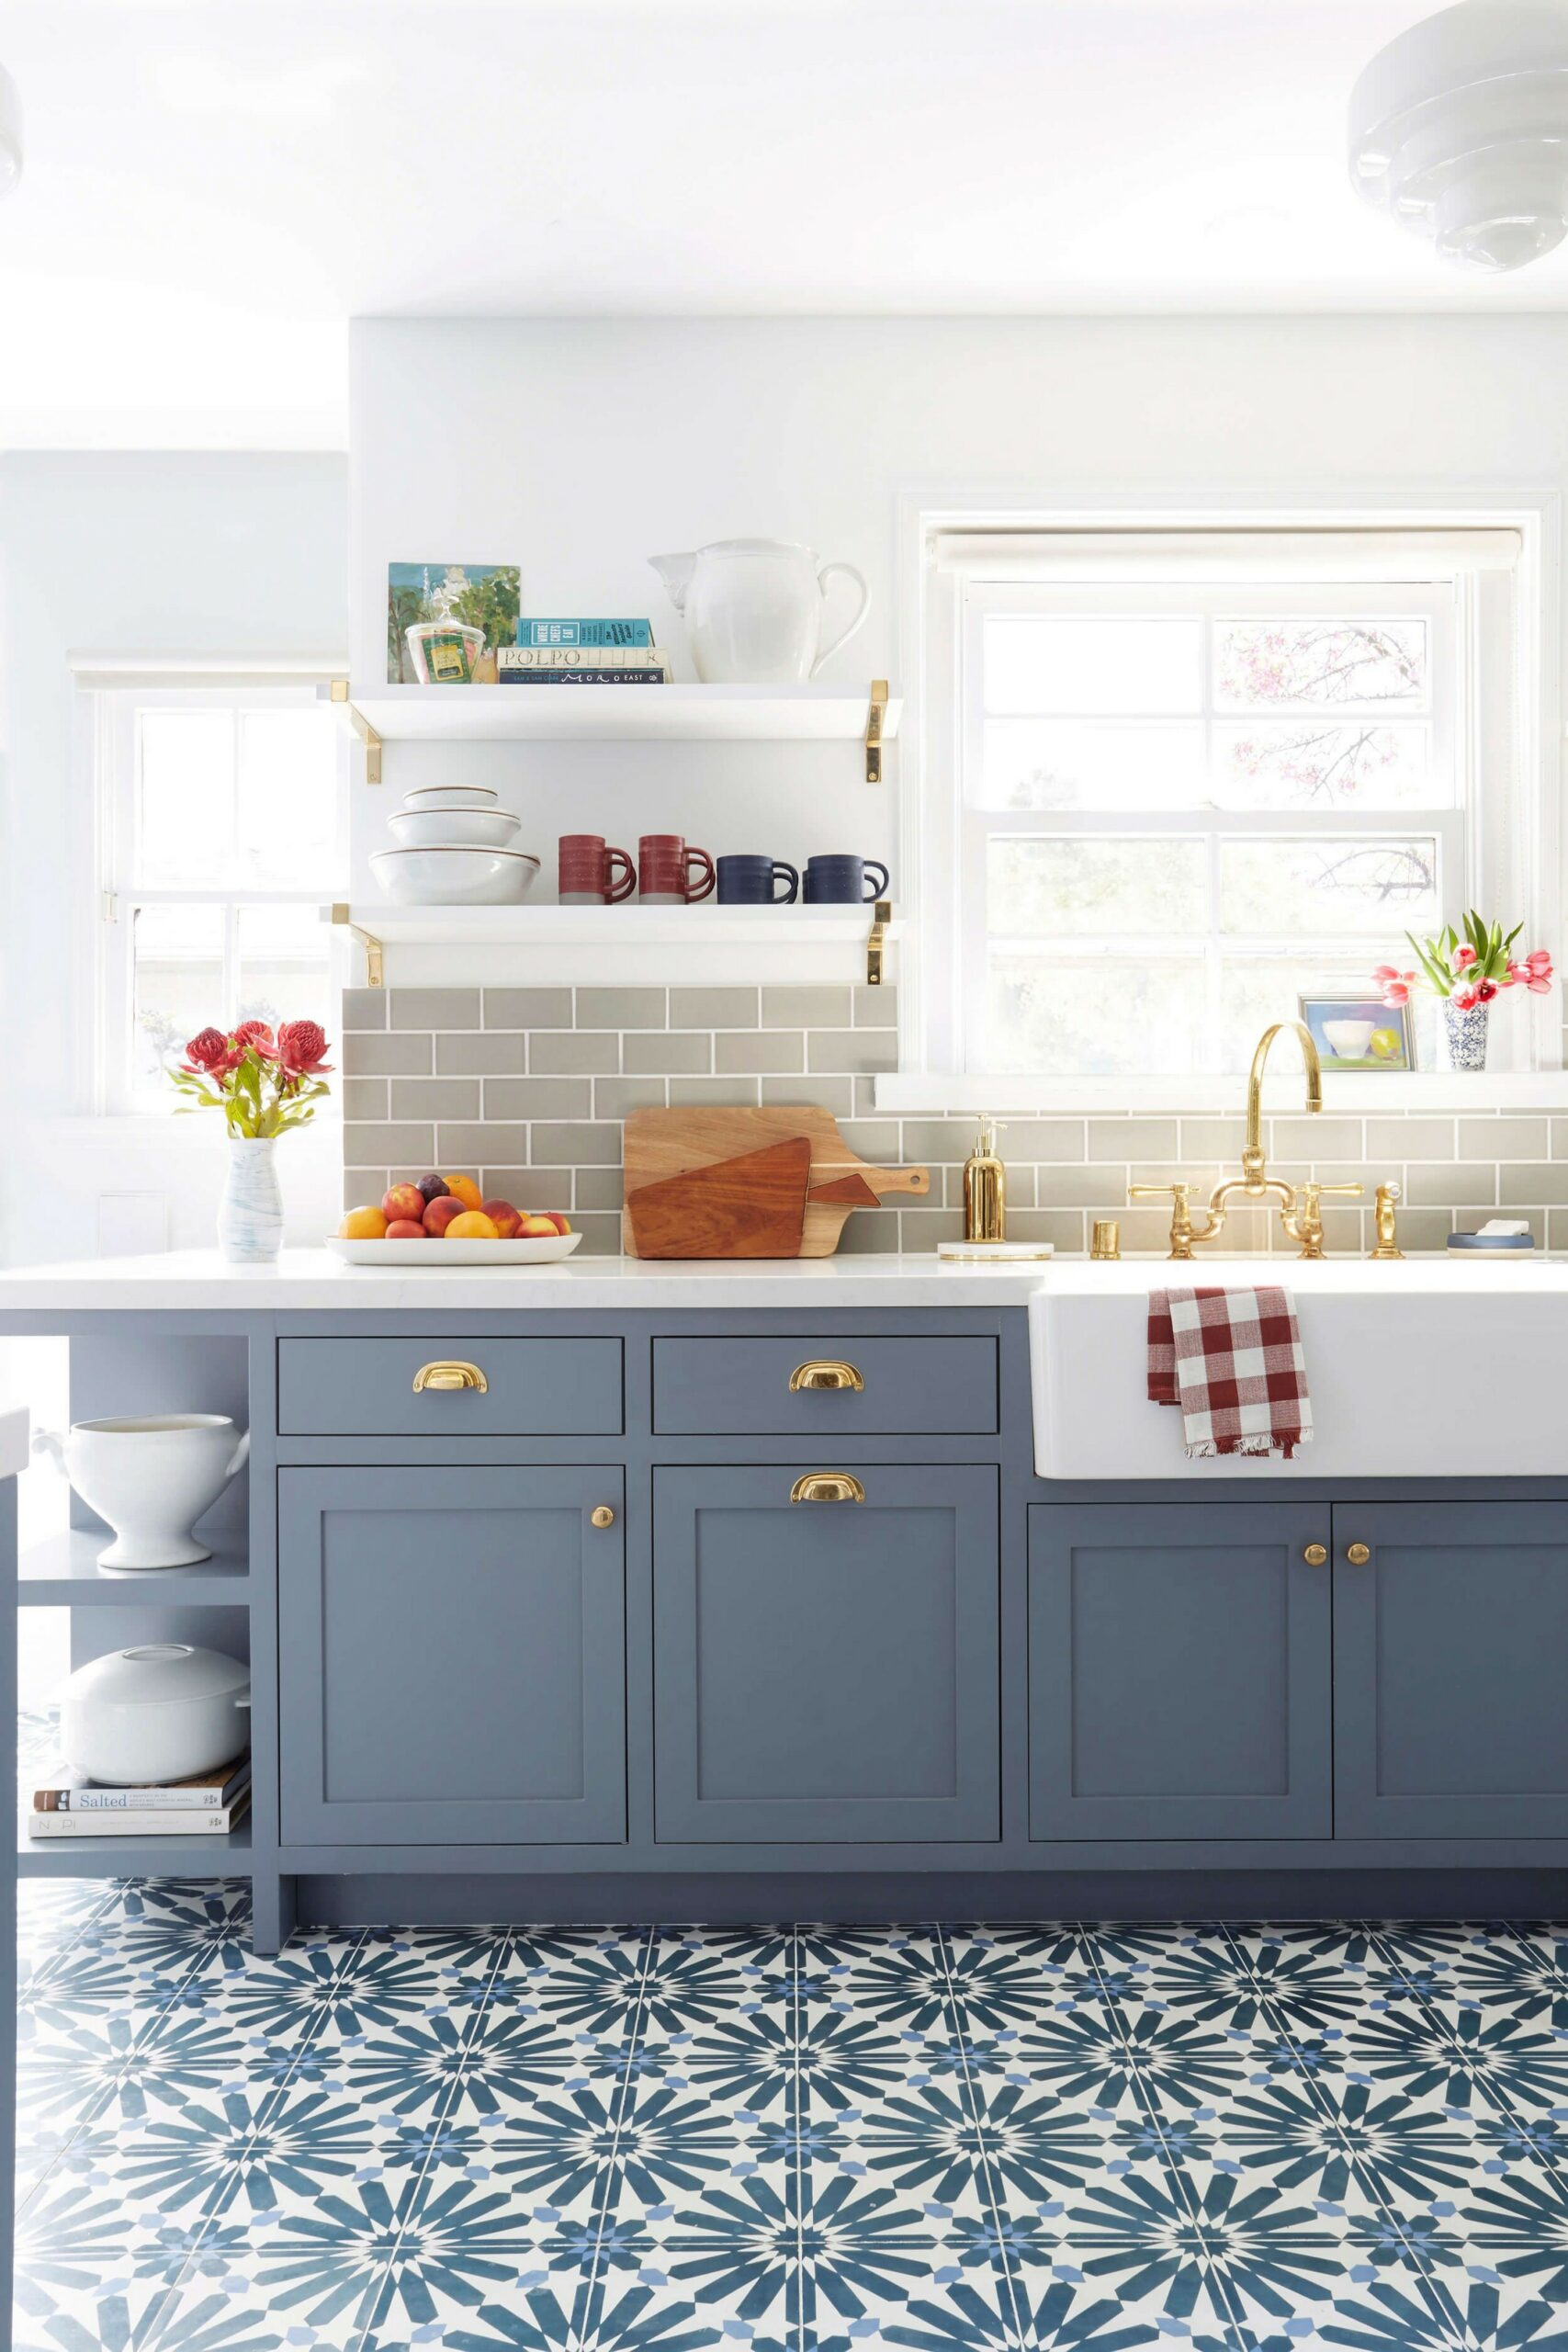 71 Painted Kitchen Cabinets Ideas For Home Decor 68